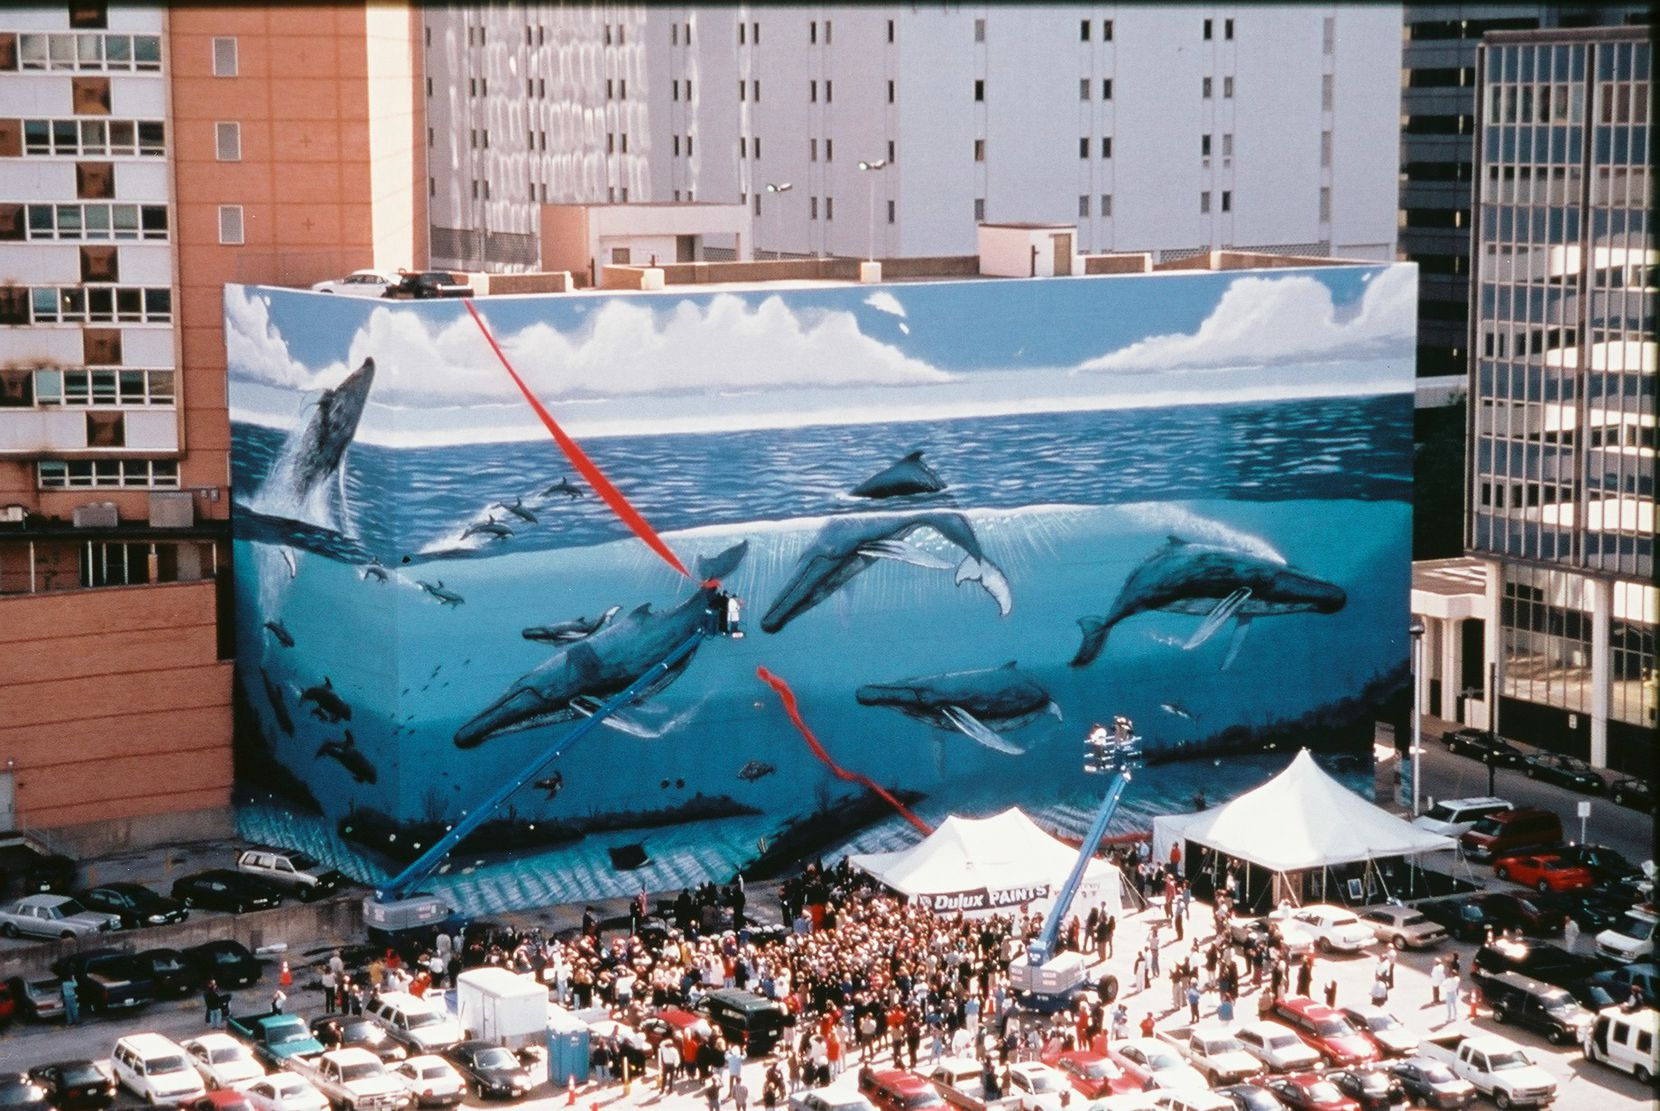 This photo was taken at the official dedication of Wyland's giant mural of humpback whales in downtown Dallas in 1999.